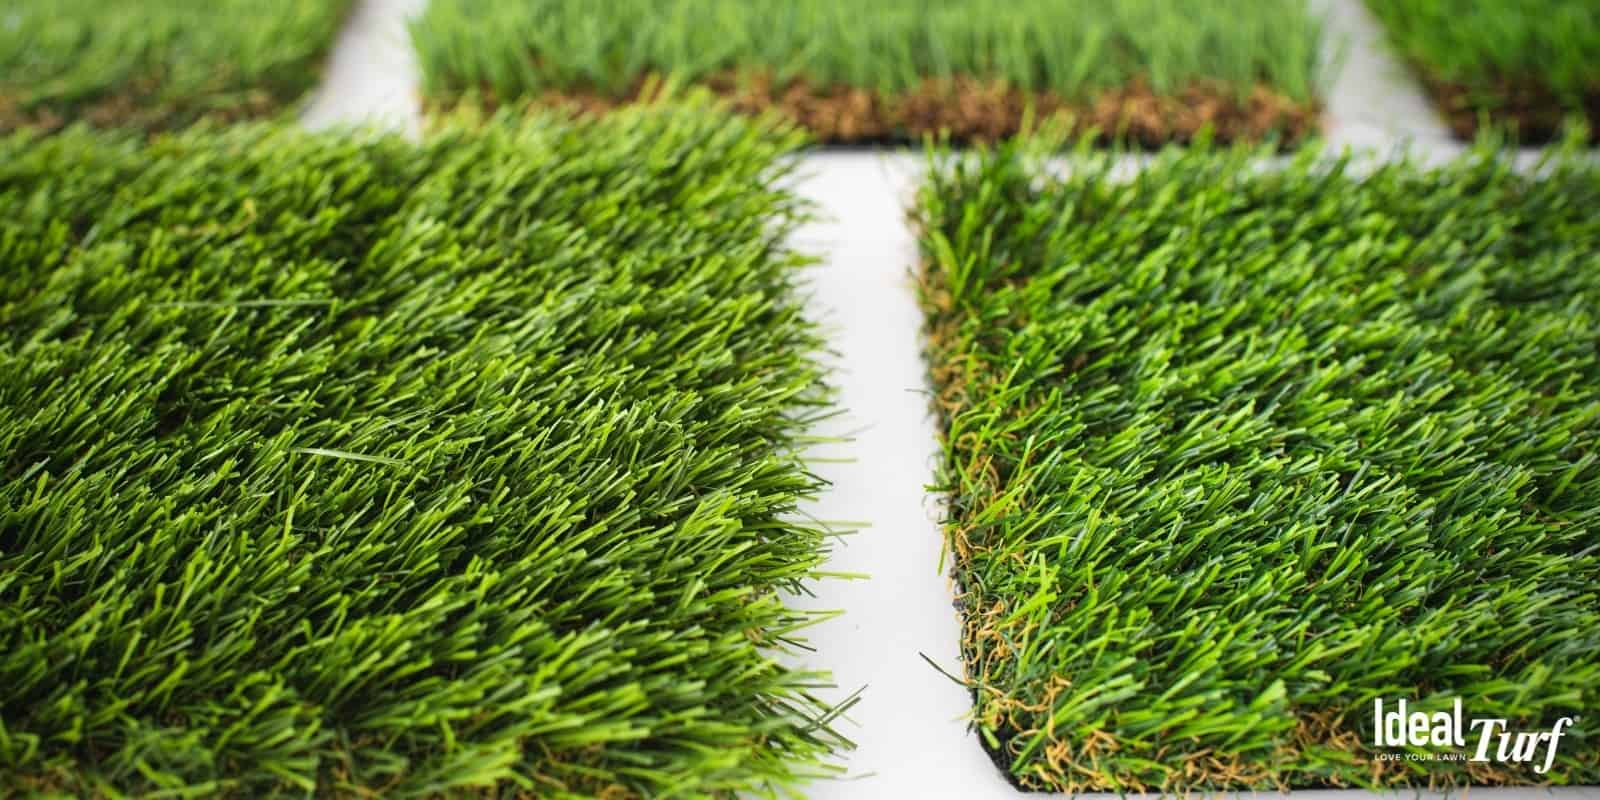 Turf product samples on white background